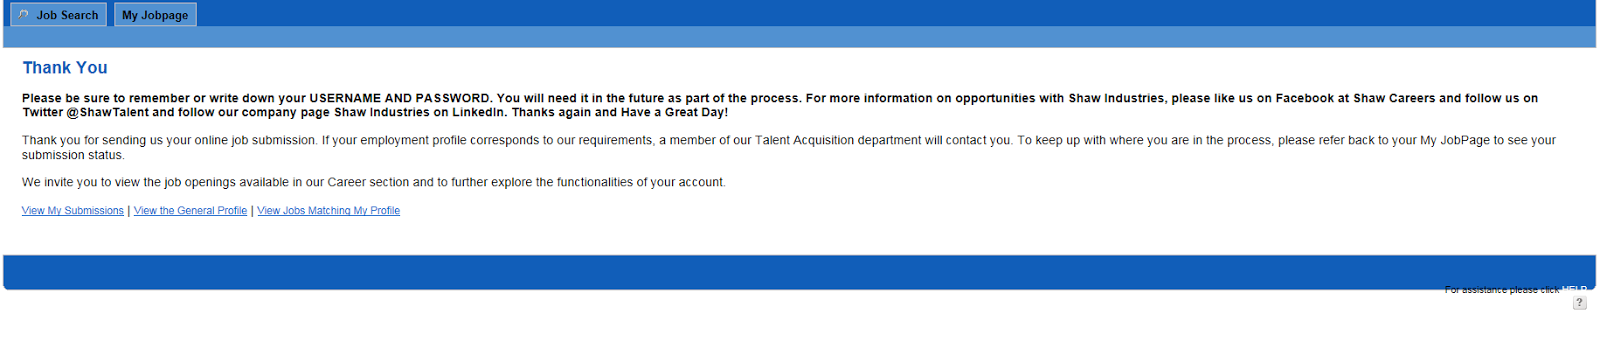 Shaw Job Application Thank You Screen